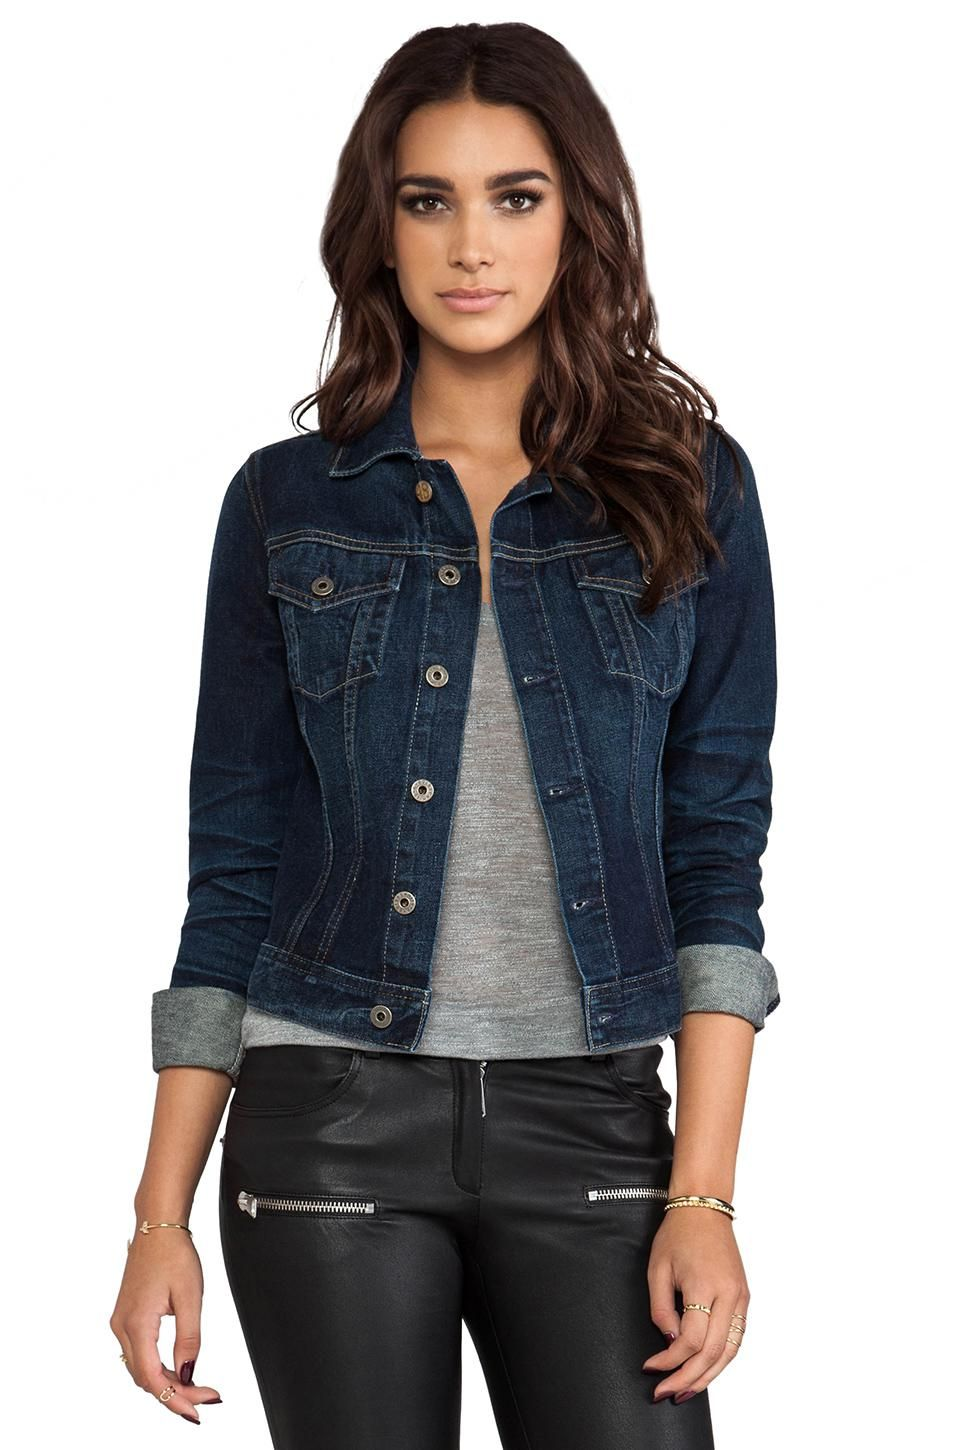 Shopping for Cheap Women Denim Jacket at yunting Clothes & Apparel Store and more from oversize jeans jacket,oversized jeans jacket women,jeans jacket women,jacket steel,jacket extreme,jacket for women winter on truemfilesb5q.gq,the Leading Trading Marketplace from China.